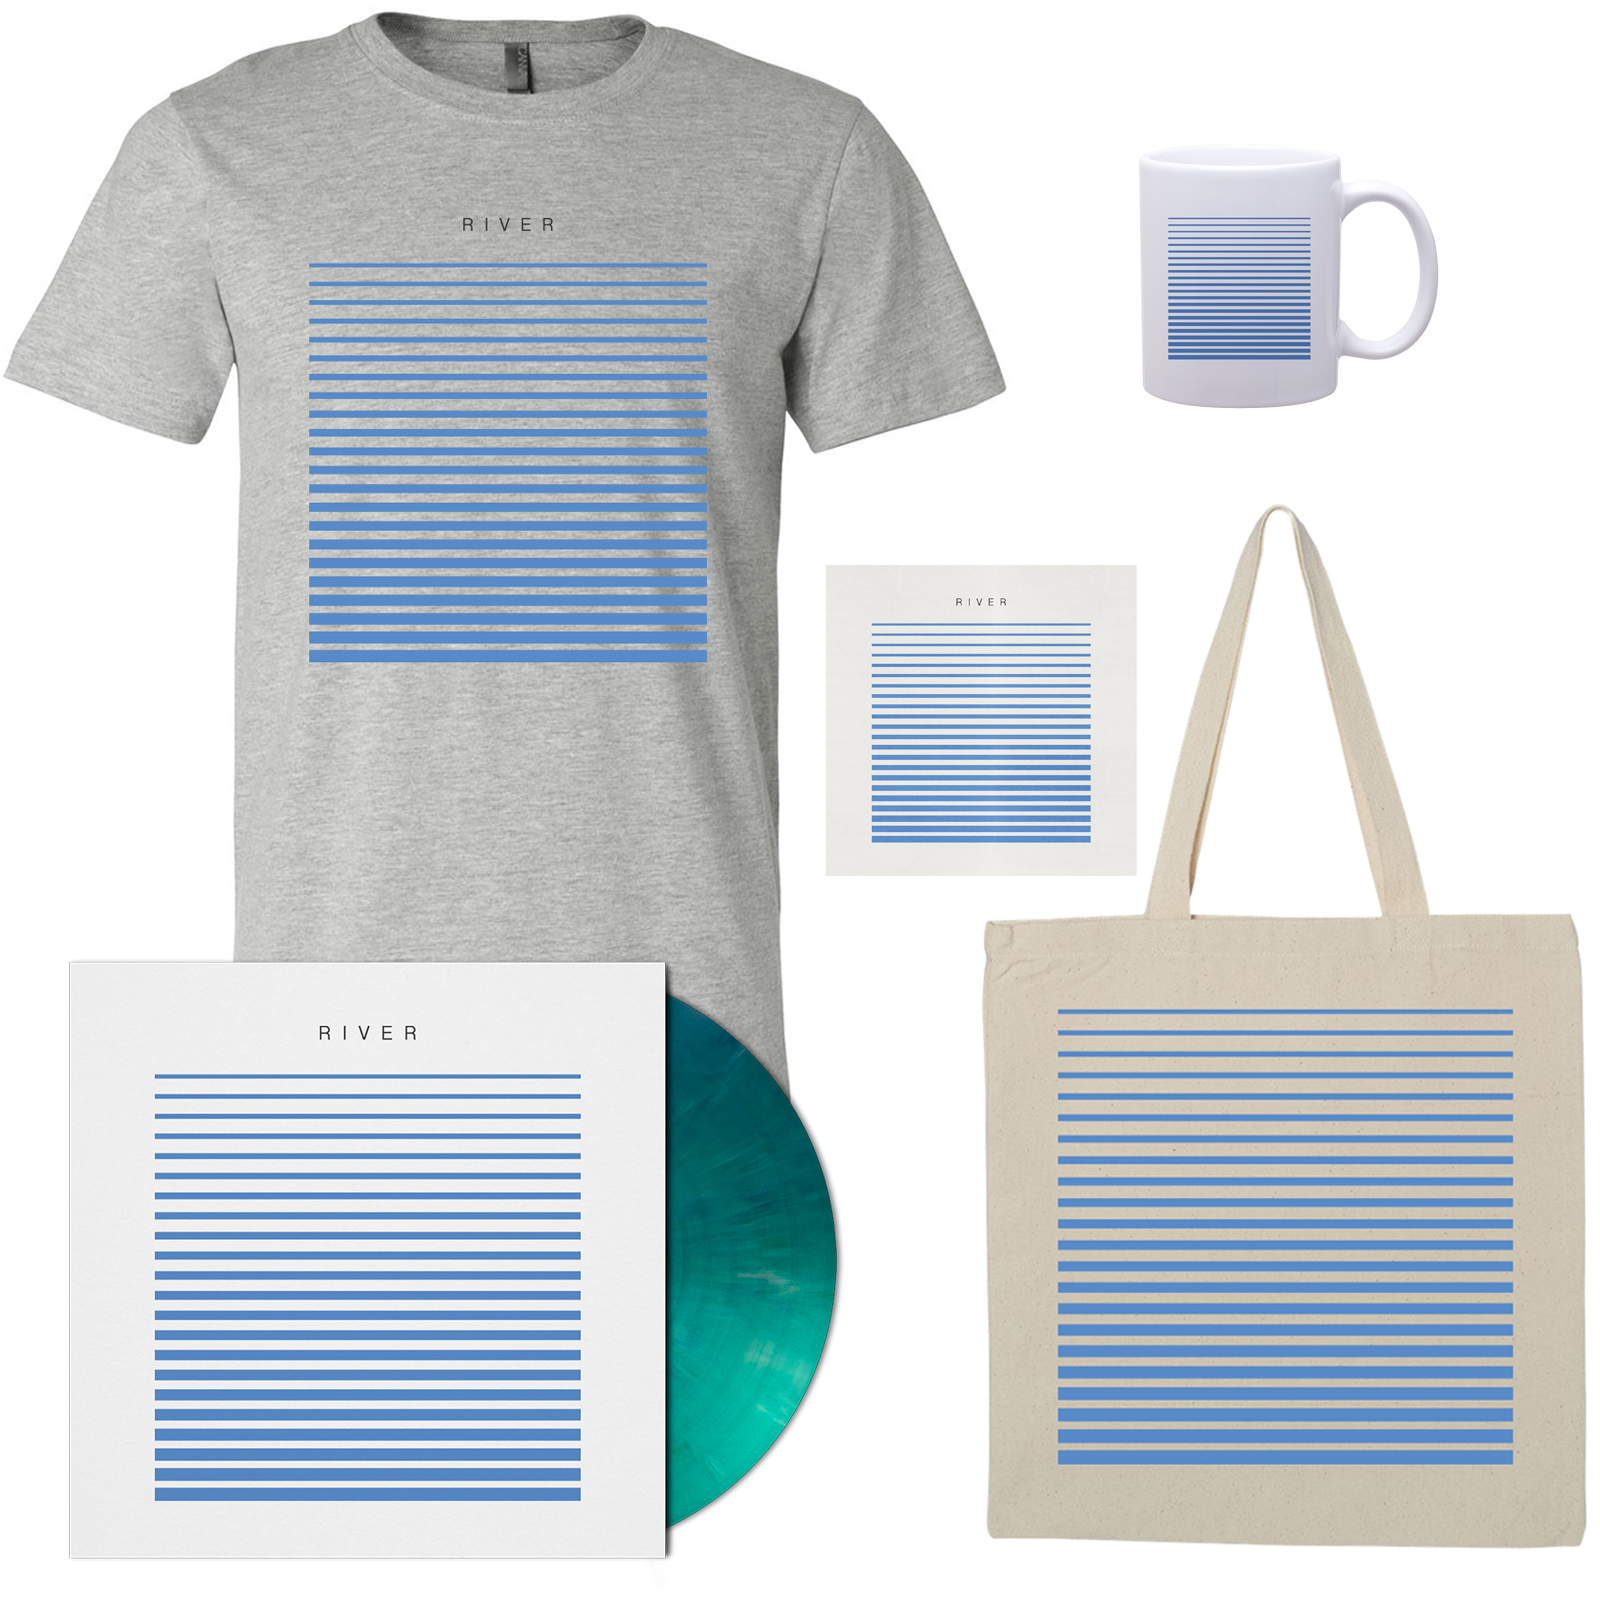 River T-Shirt - Grey, Tote, Mug, Vinyl, and CD Bundle